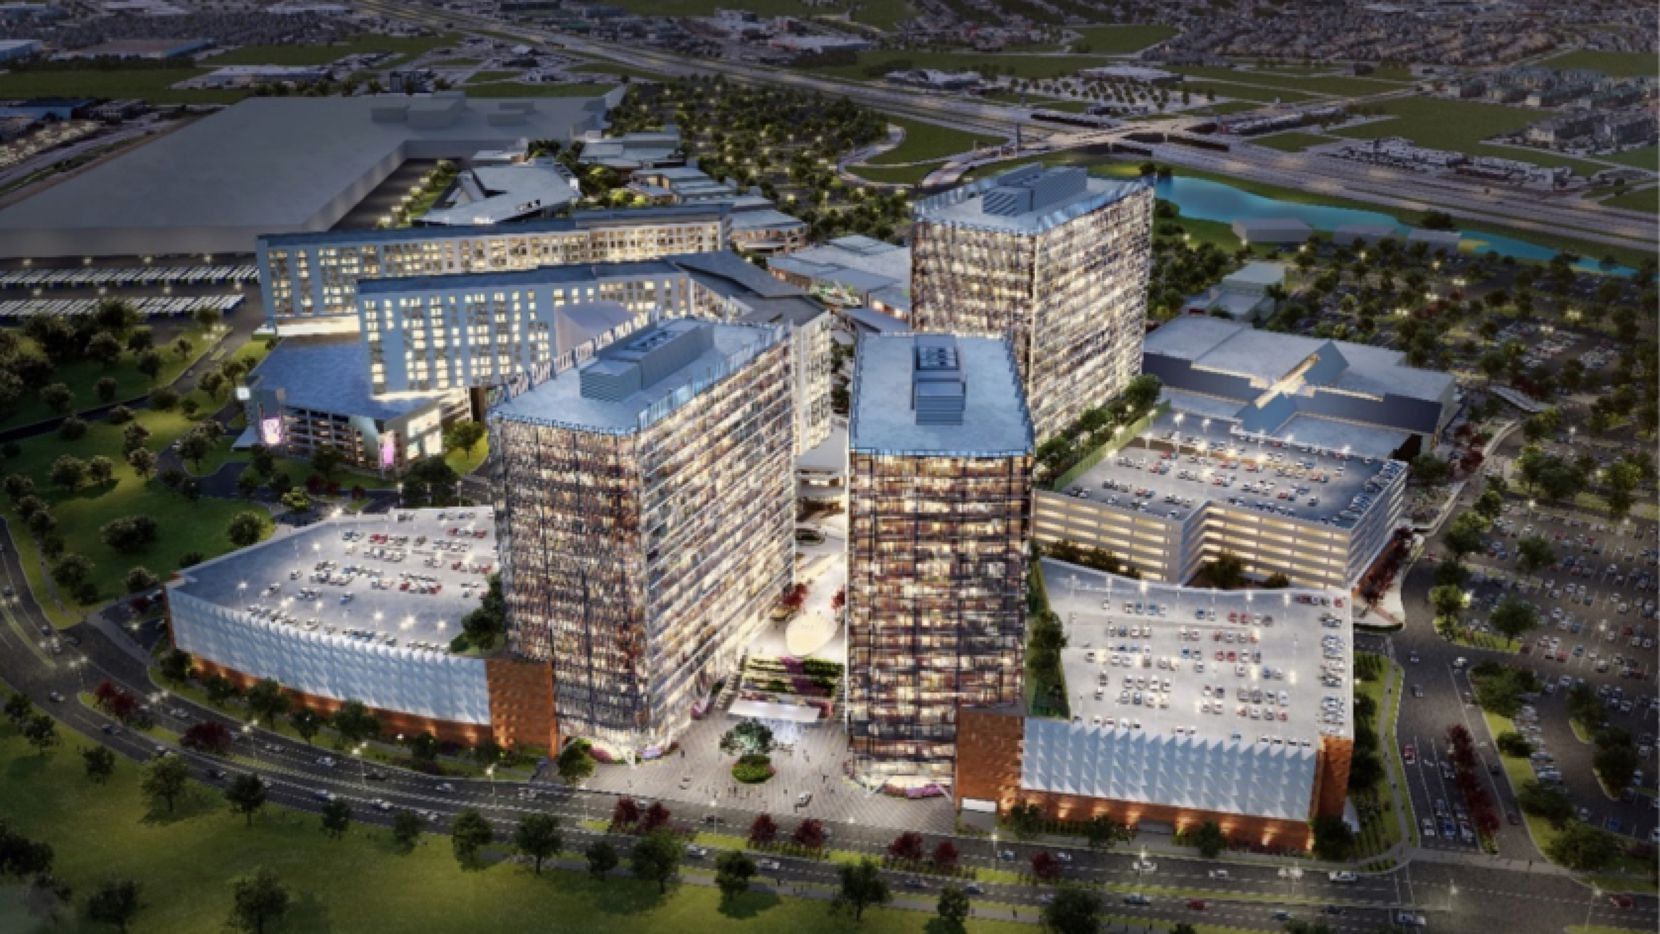 Cawley Partners is teaming up with Grandscape's developers to build more than 1.5 million square feet of offices in the project on S.H. 121 in the Colony.